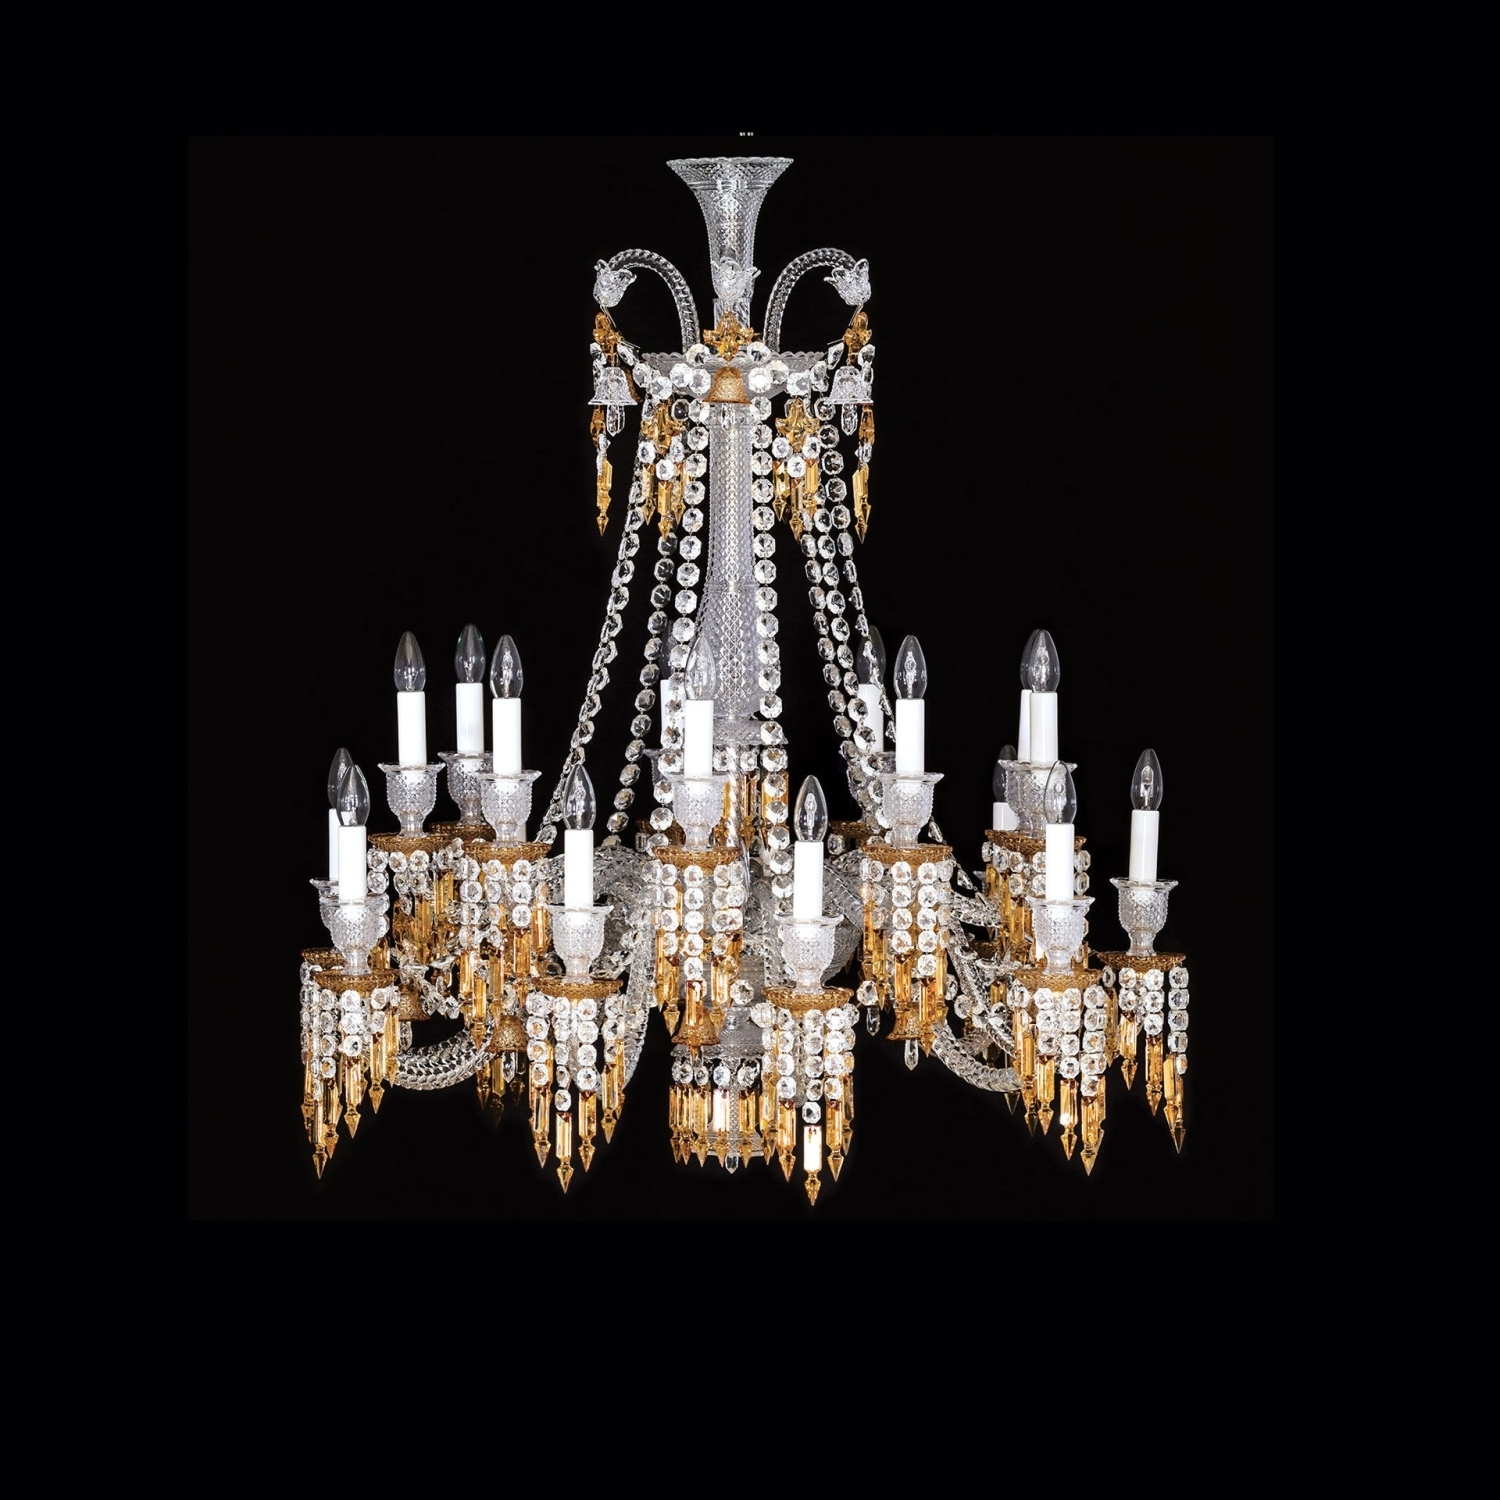 Chandelier 18l Baccarat Zenith Charleston 2809420 In Popular Short Chandelier (View 9 of 20)